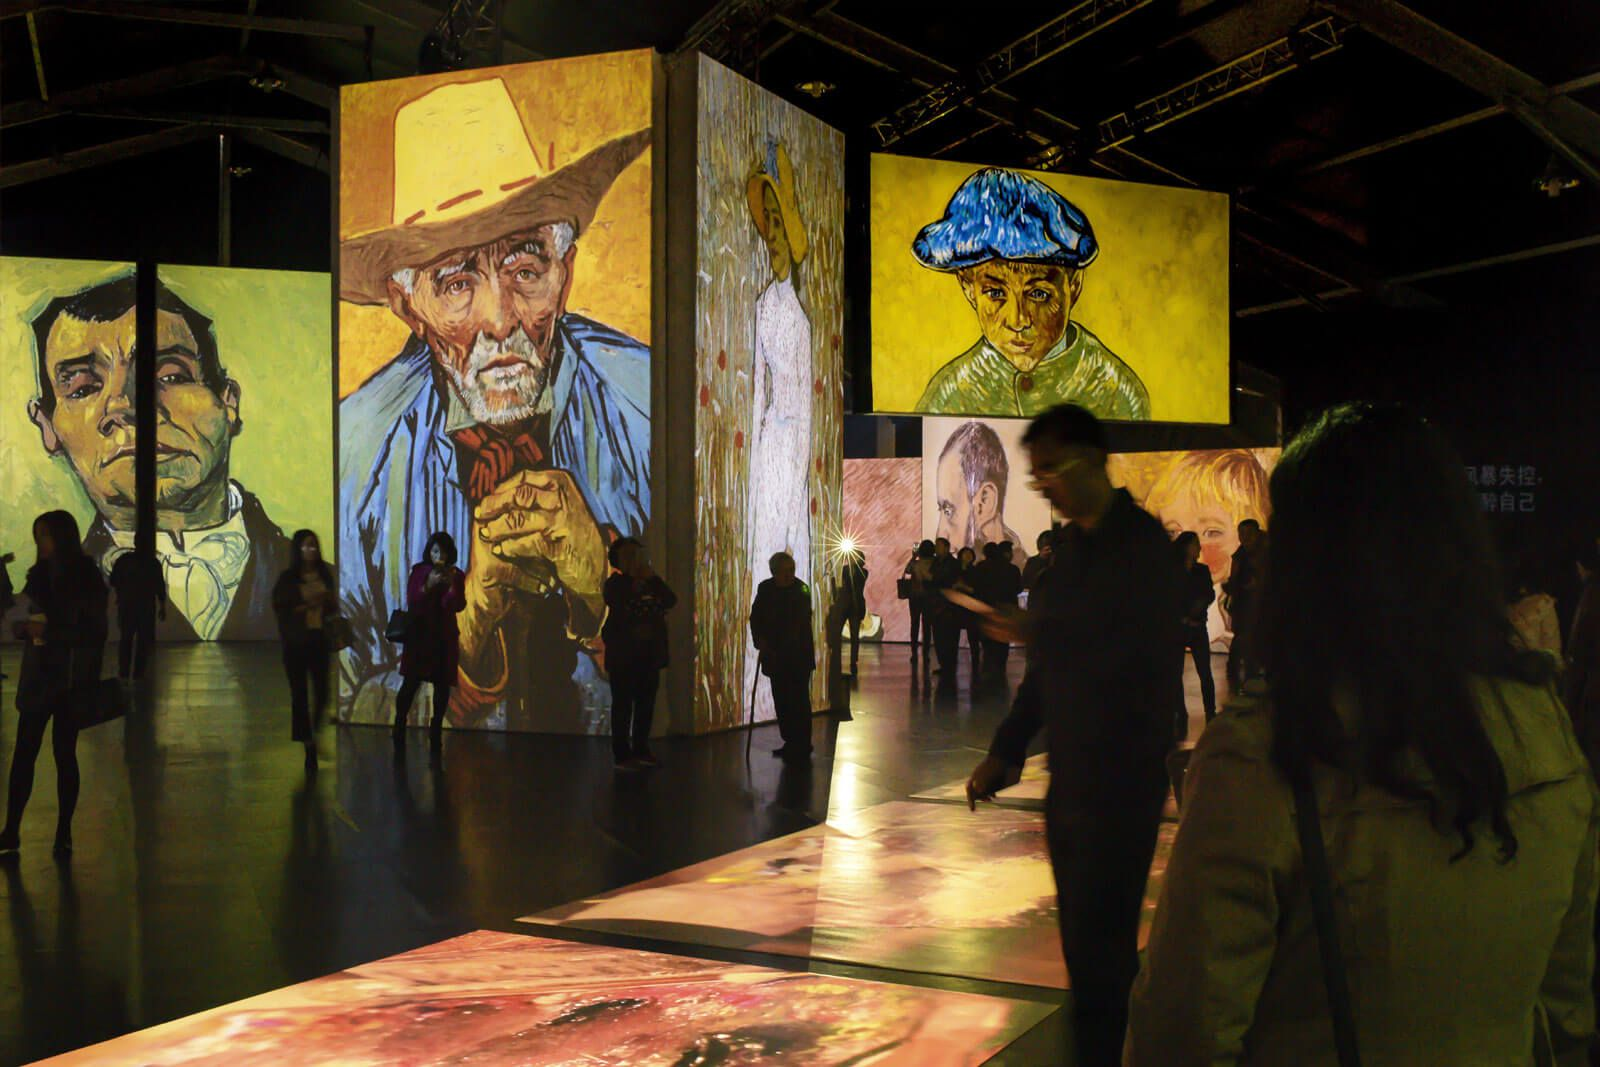 5 Things You Should Know About the Upcoming Van Gogh Exhibit in Manila